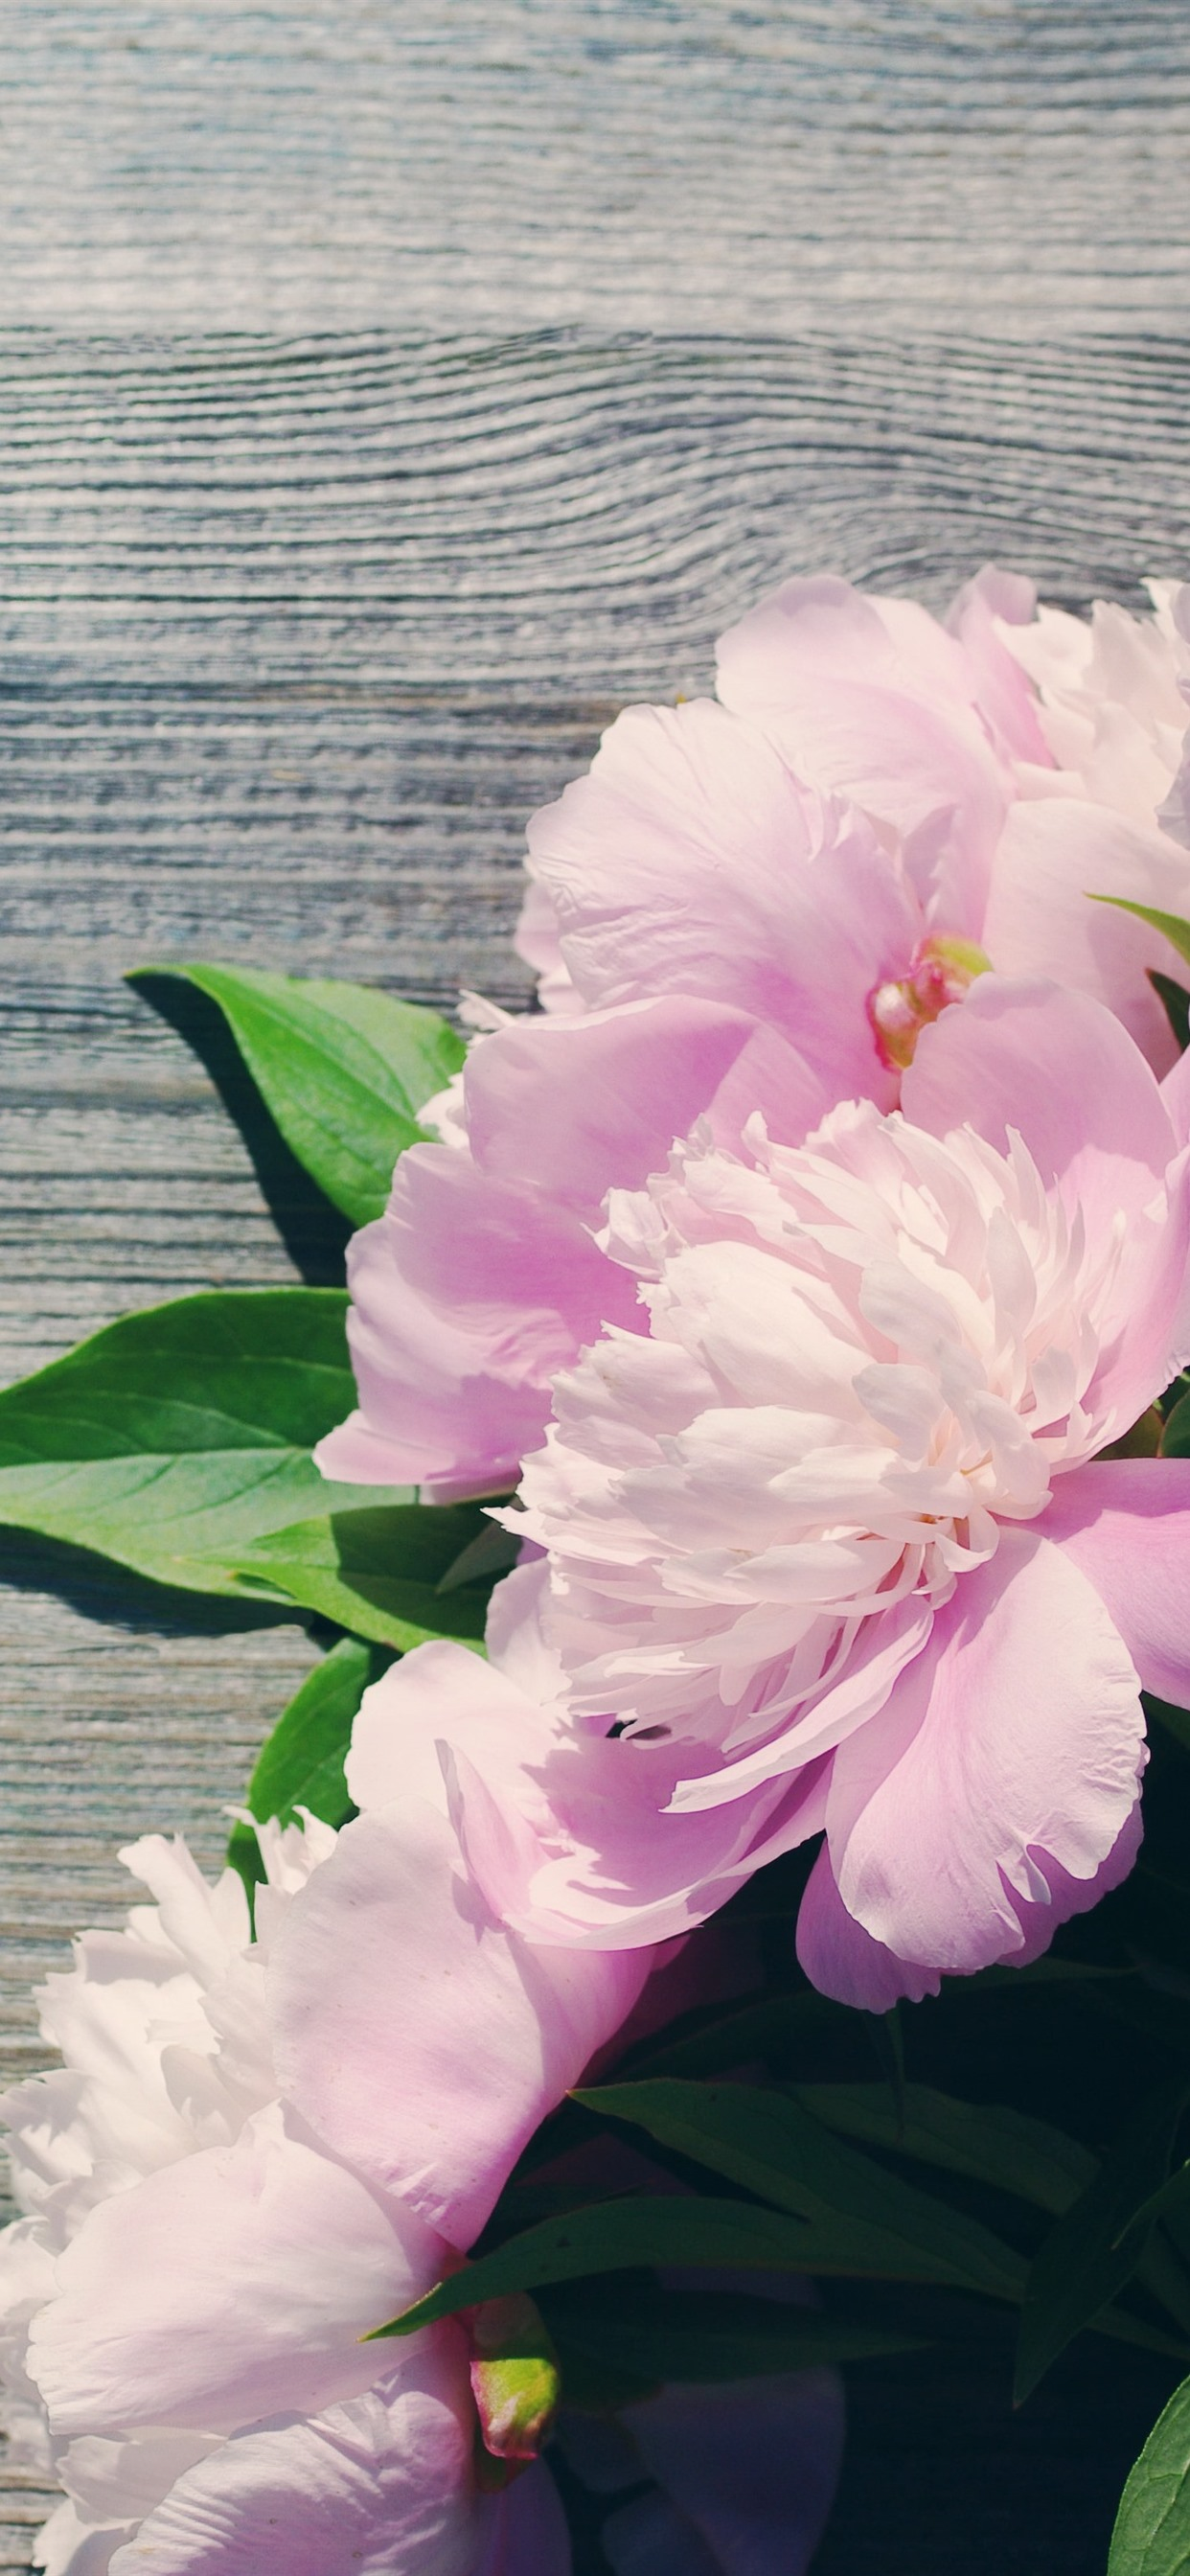 Pink Peonies Flowers 1242x2688 Iphone Xs Max Wallpaper Background